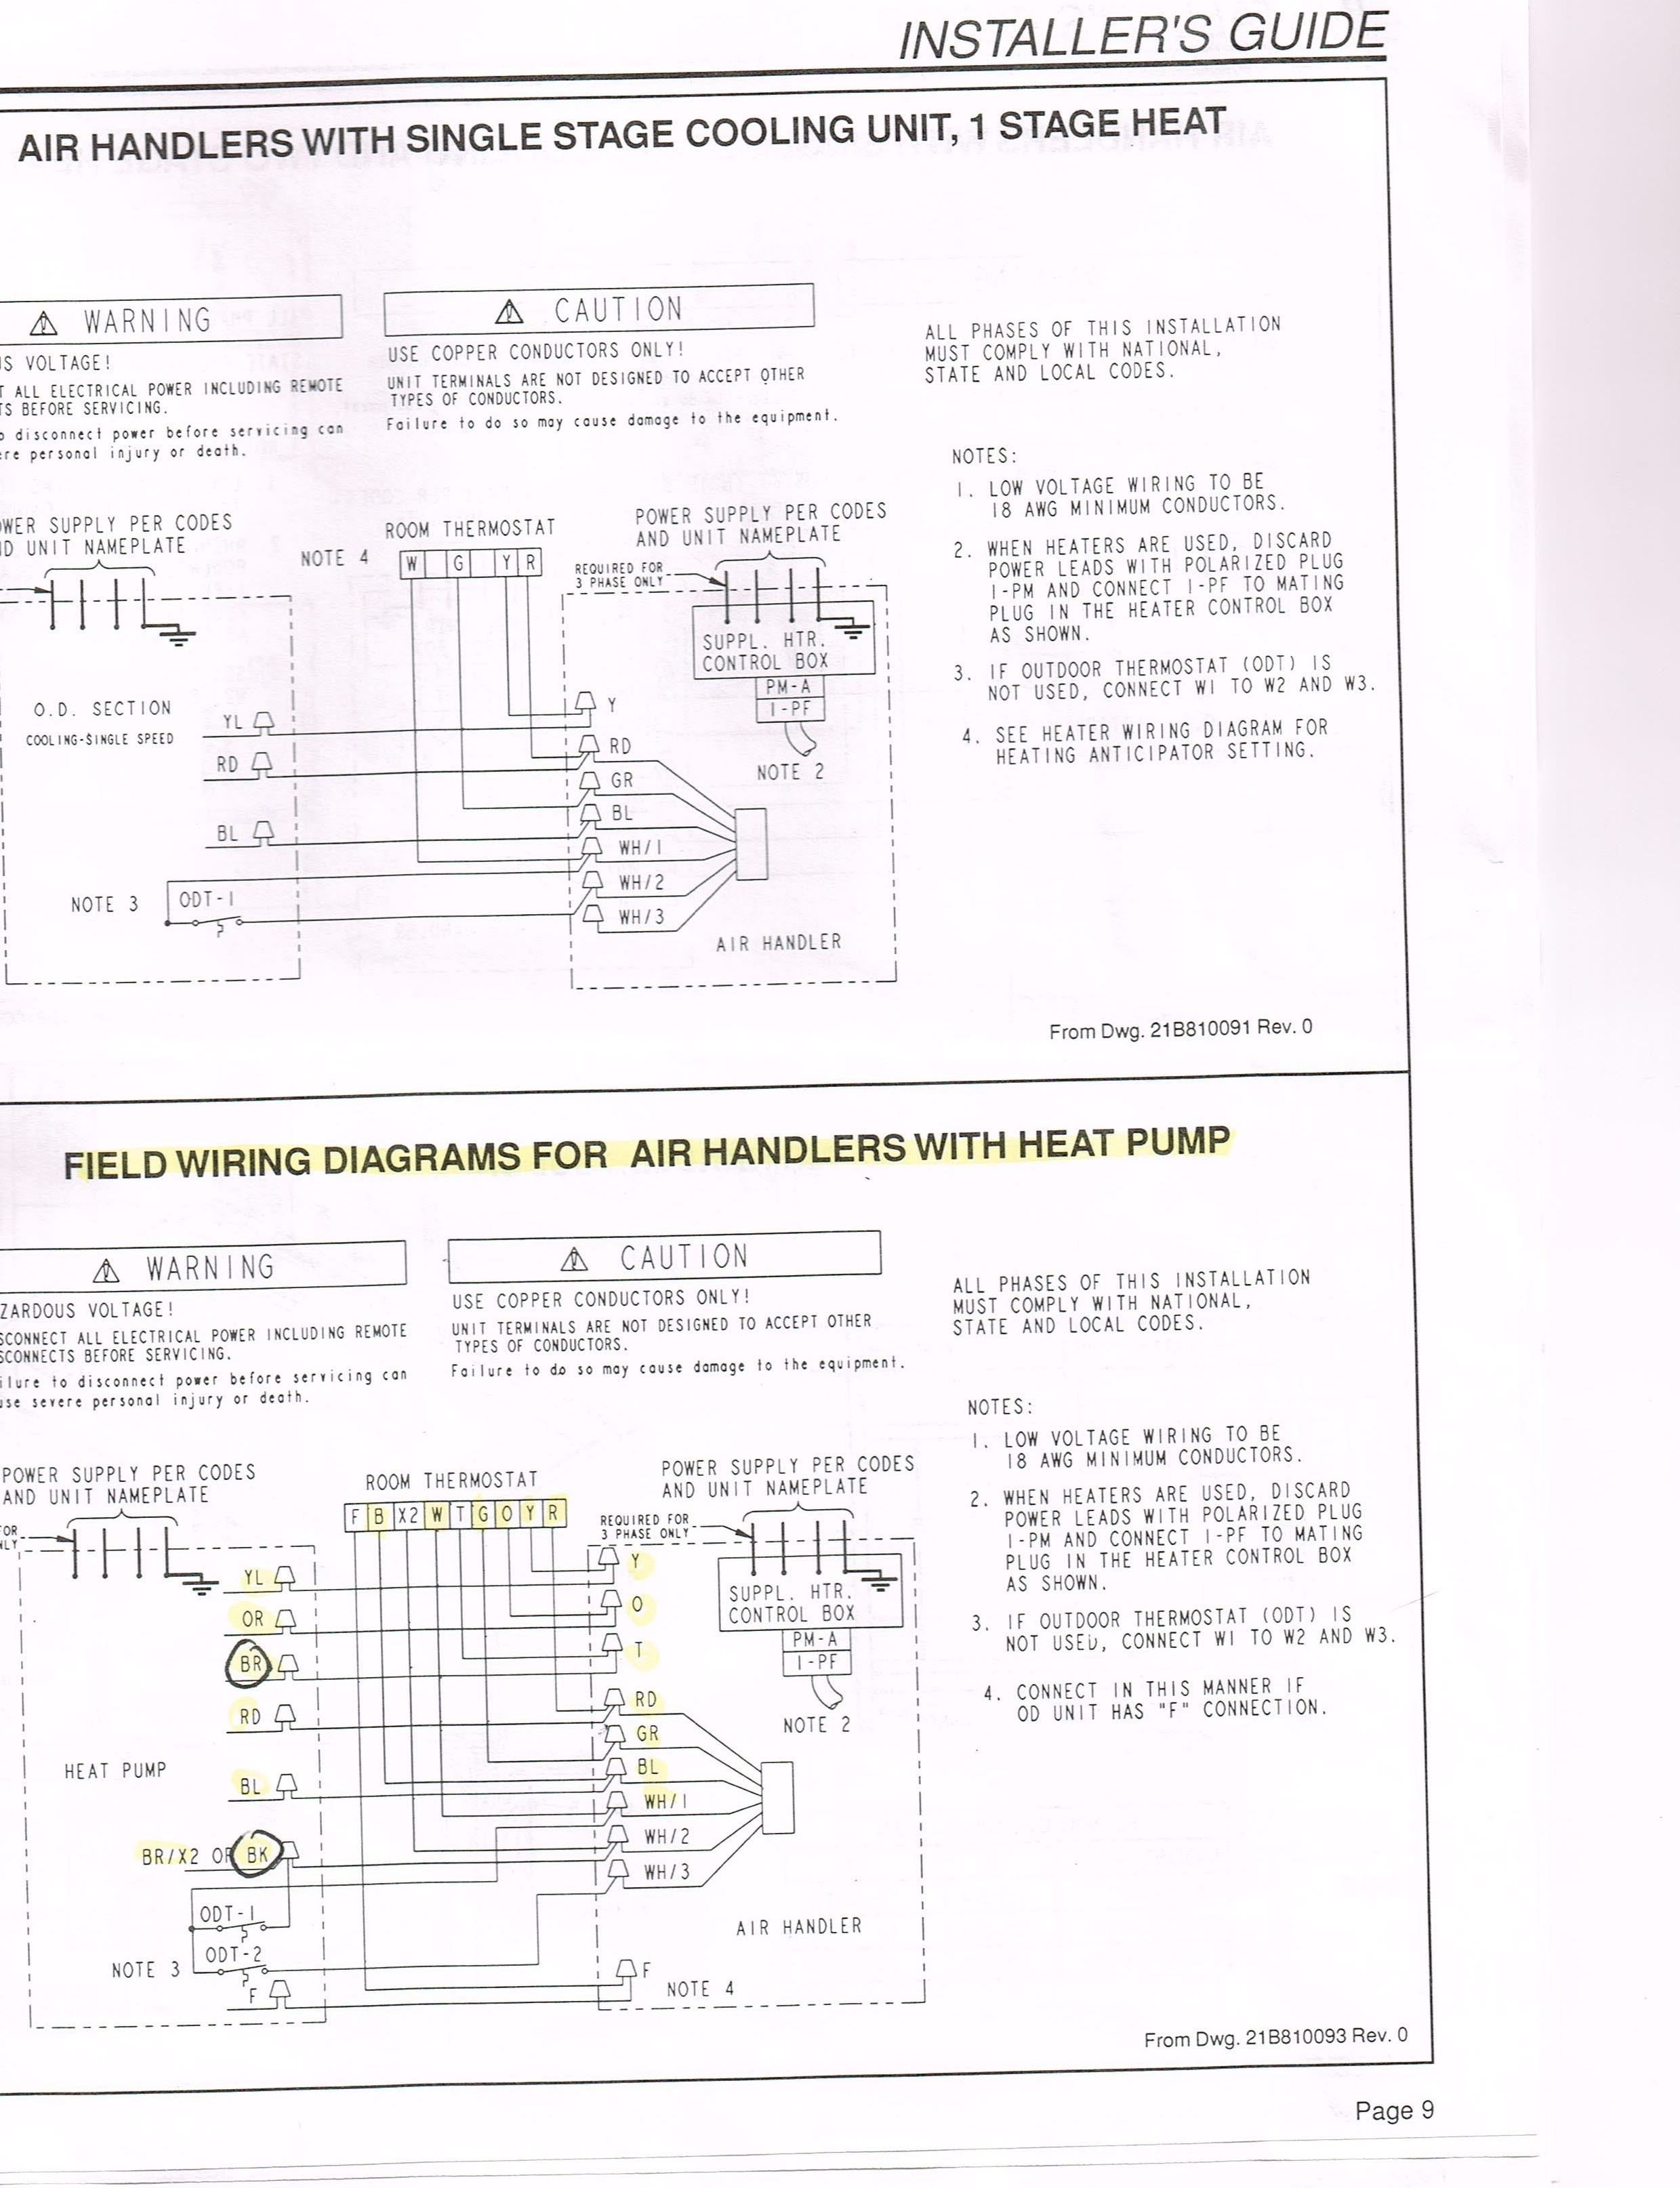 Electrical Outlet Wiring Diagram Unique Delighted asystat655a Wiring Diagram Inspiration